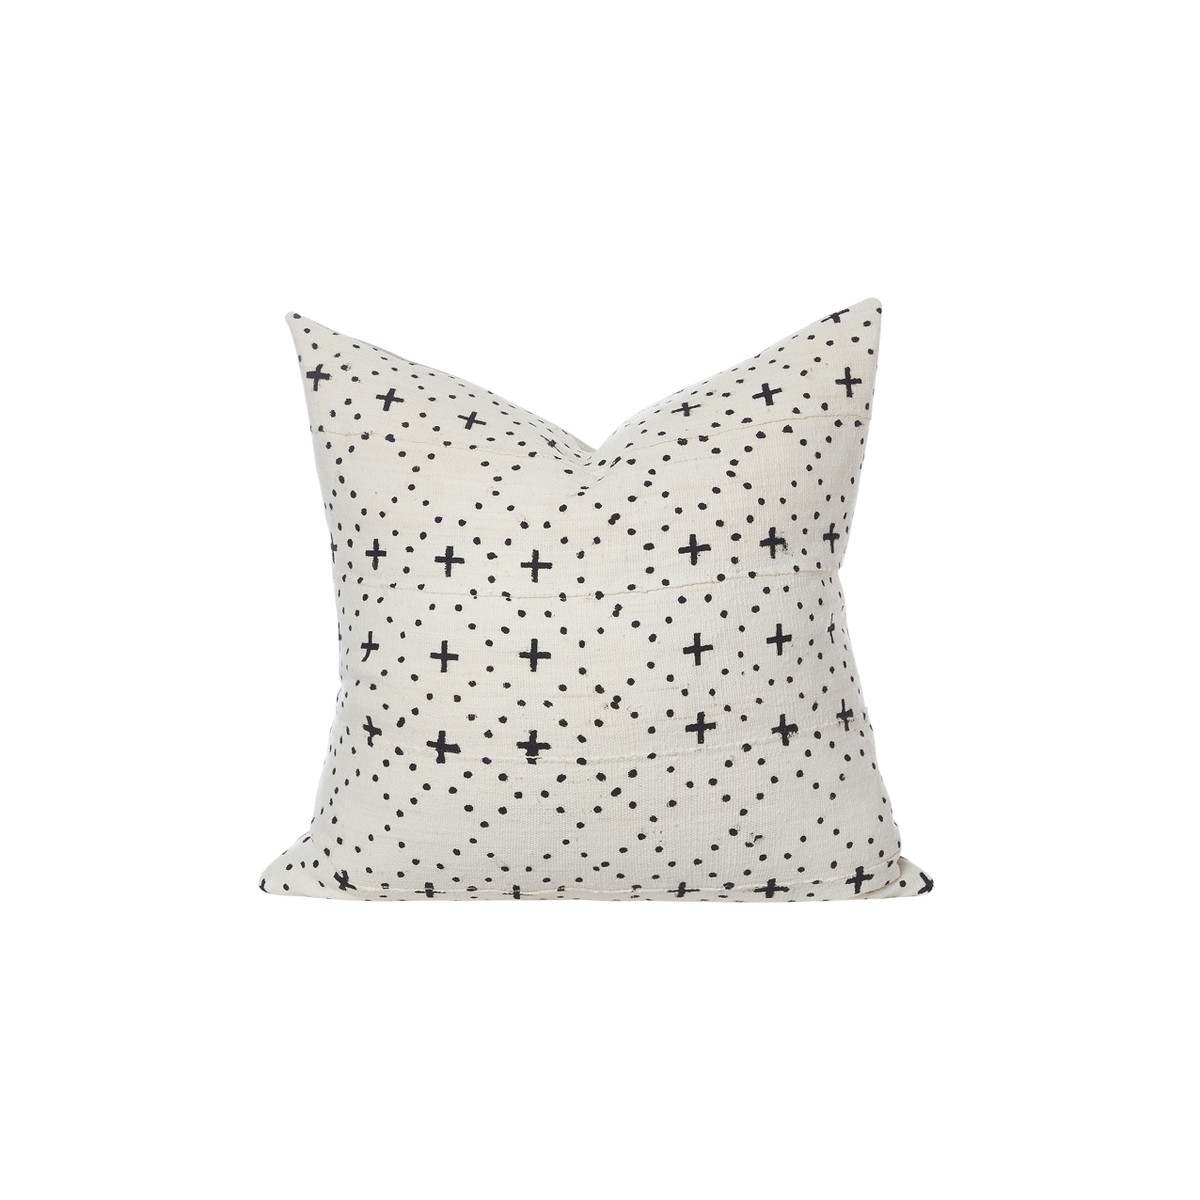 Cosmic White and Black Mud cloth pillow - Front